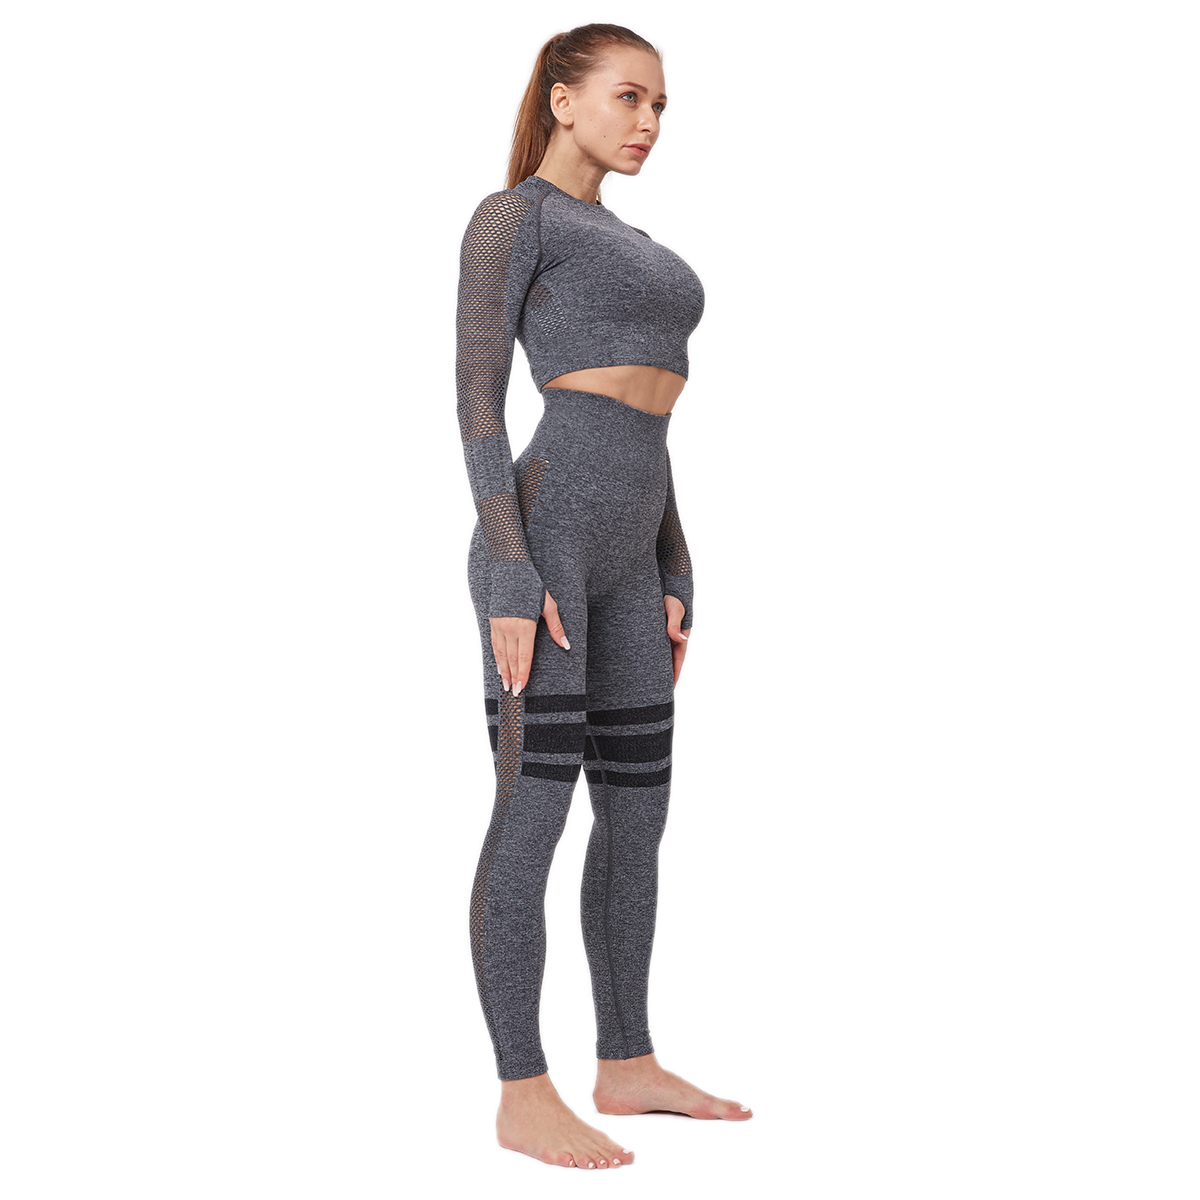 Outstanding Quality Women Sports Crop Top Long Sleeve Yoga Clothes Set With Logo